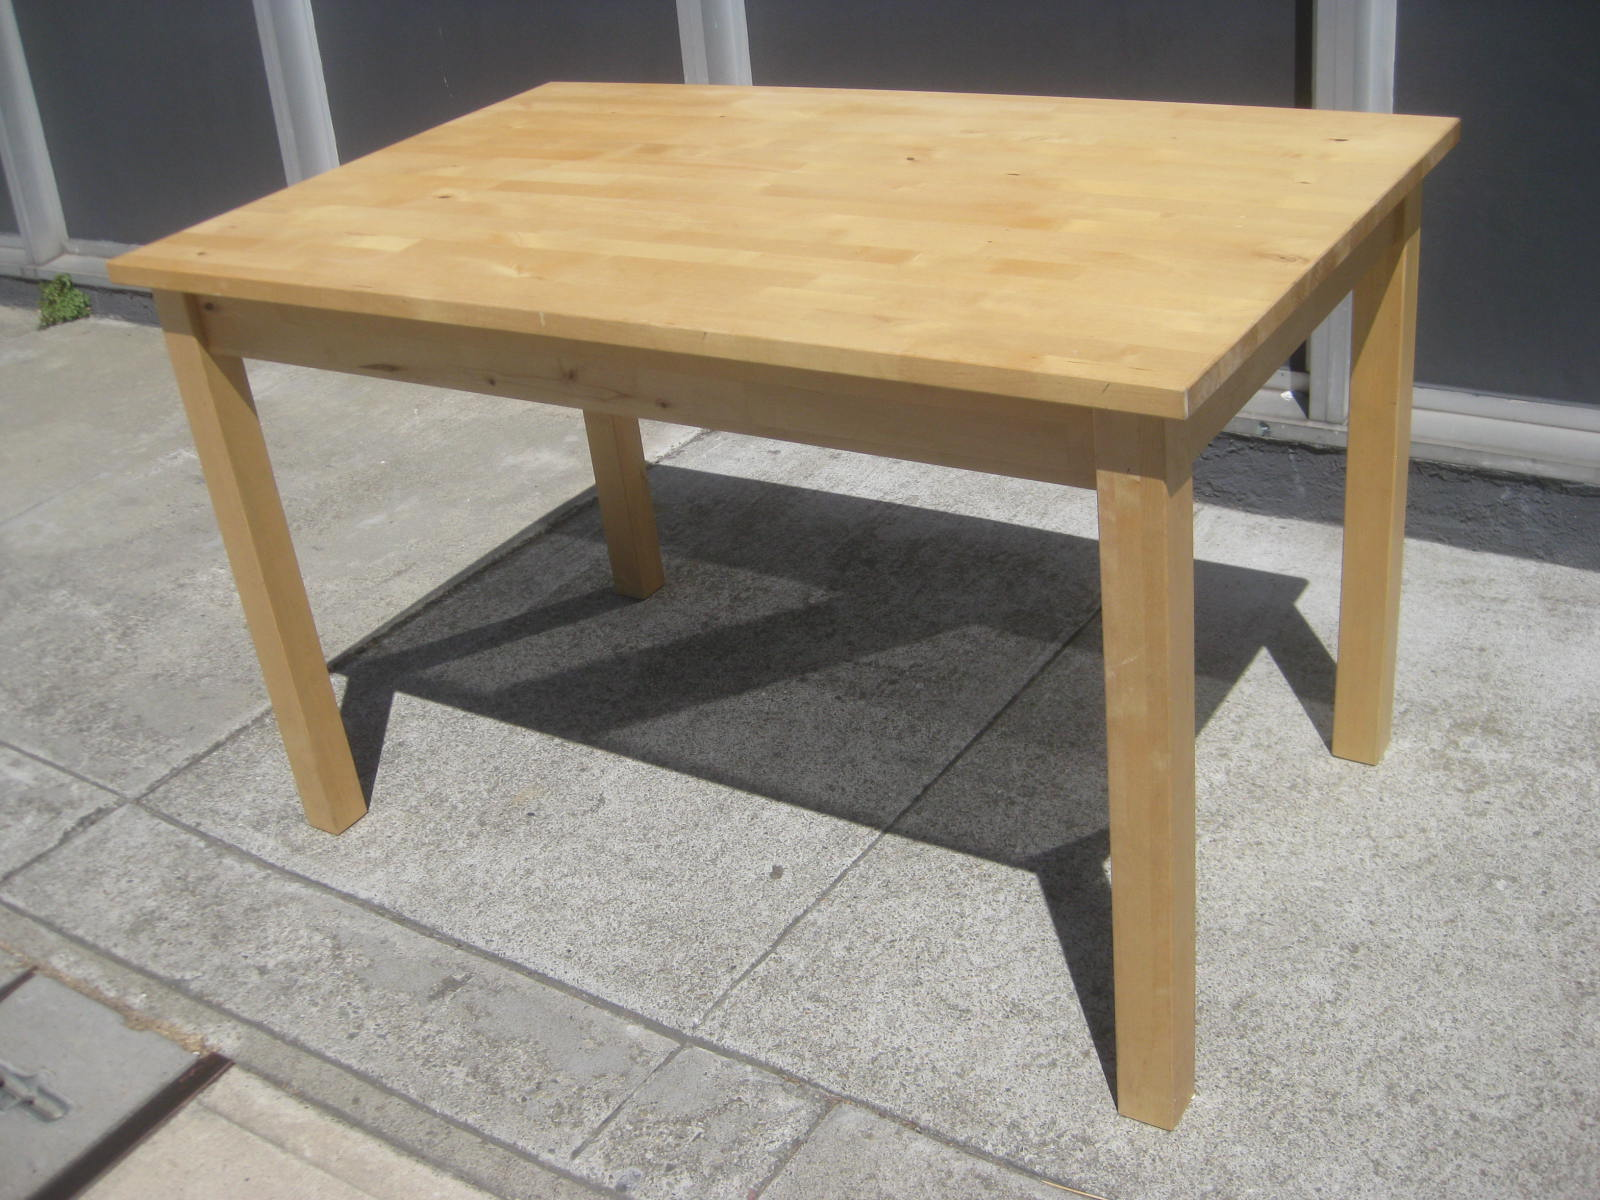 ikea wooden dining table 4 chairs iron lounge laver with